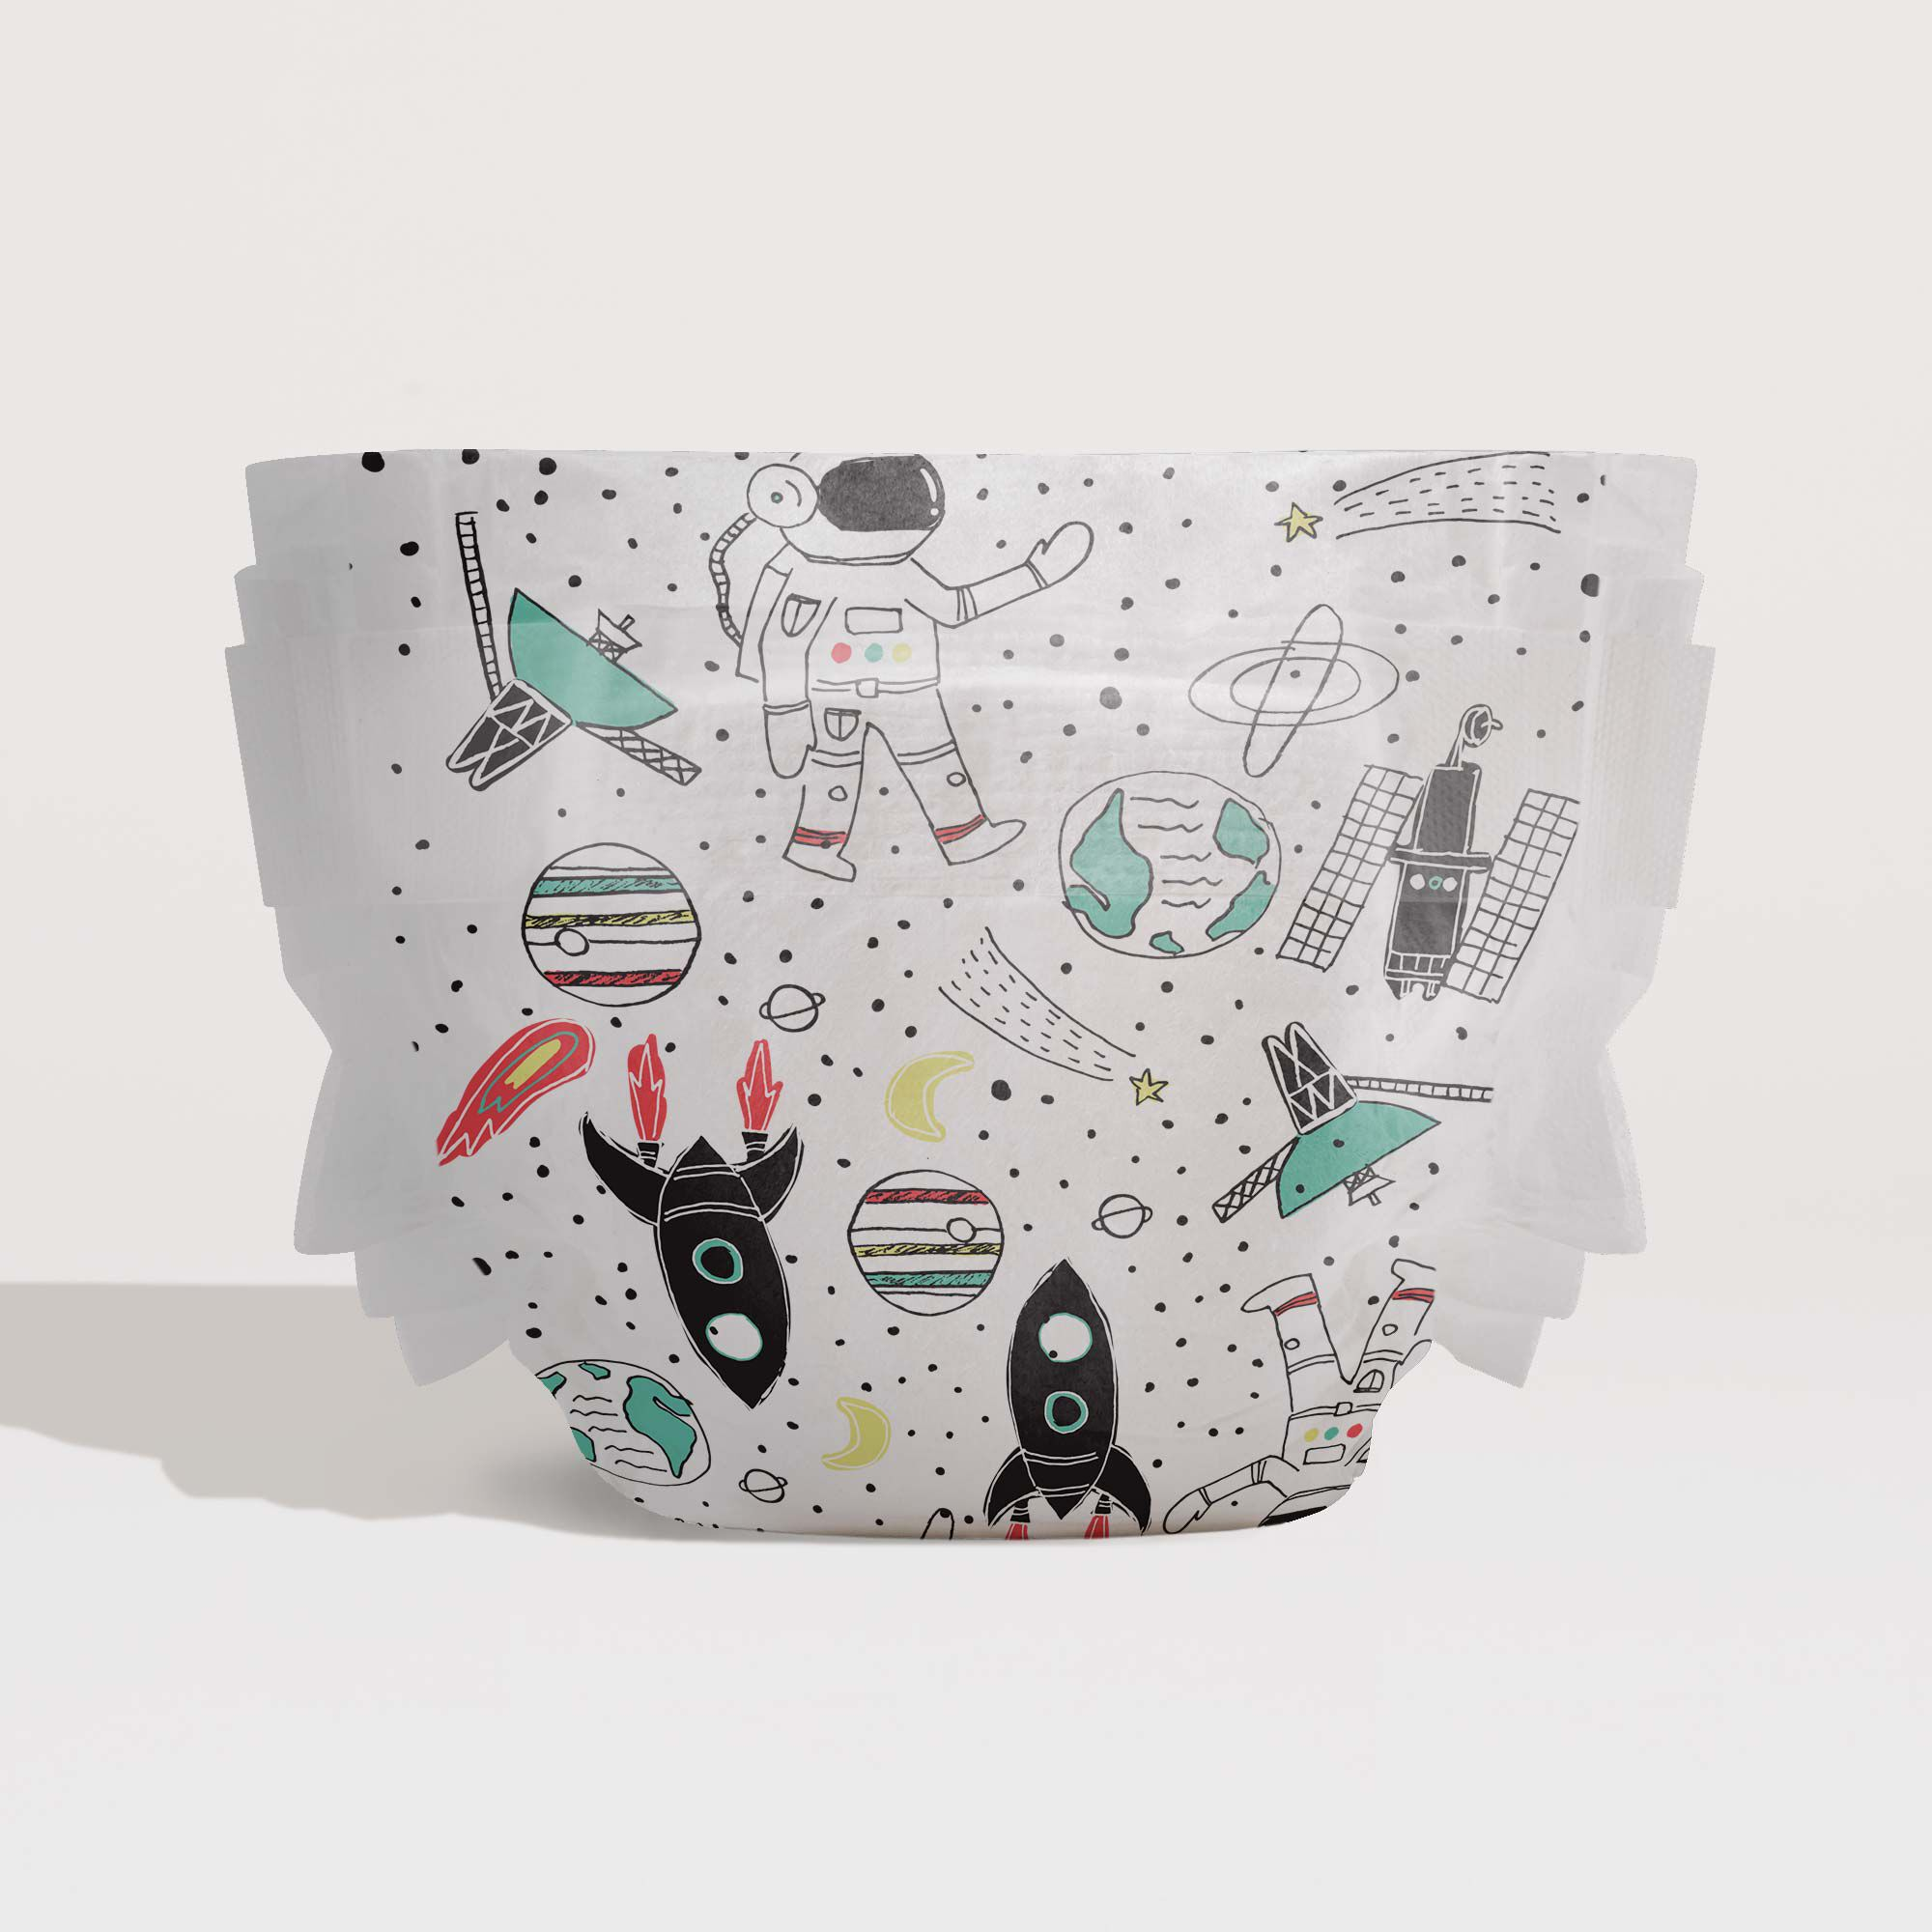 Diapers, Space Traveling, Size 5